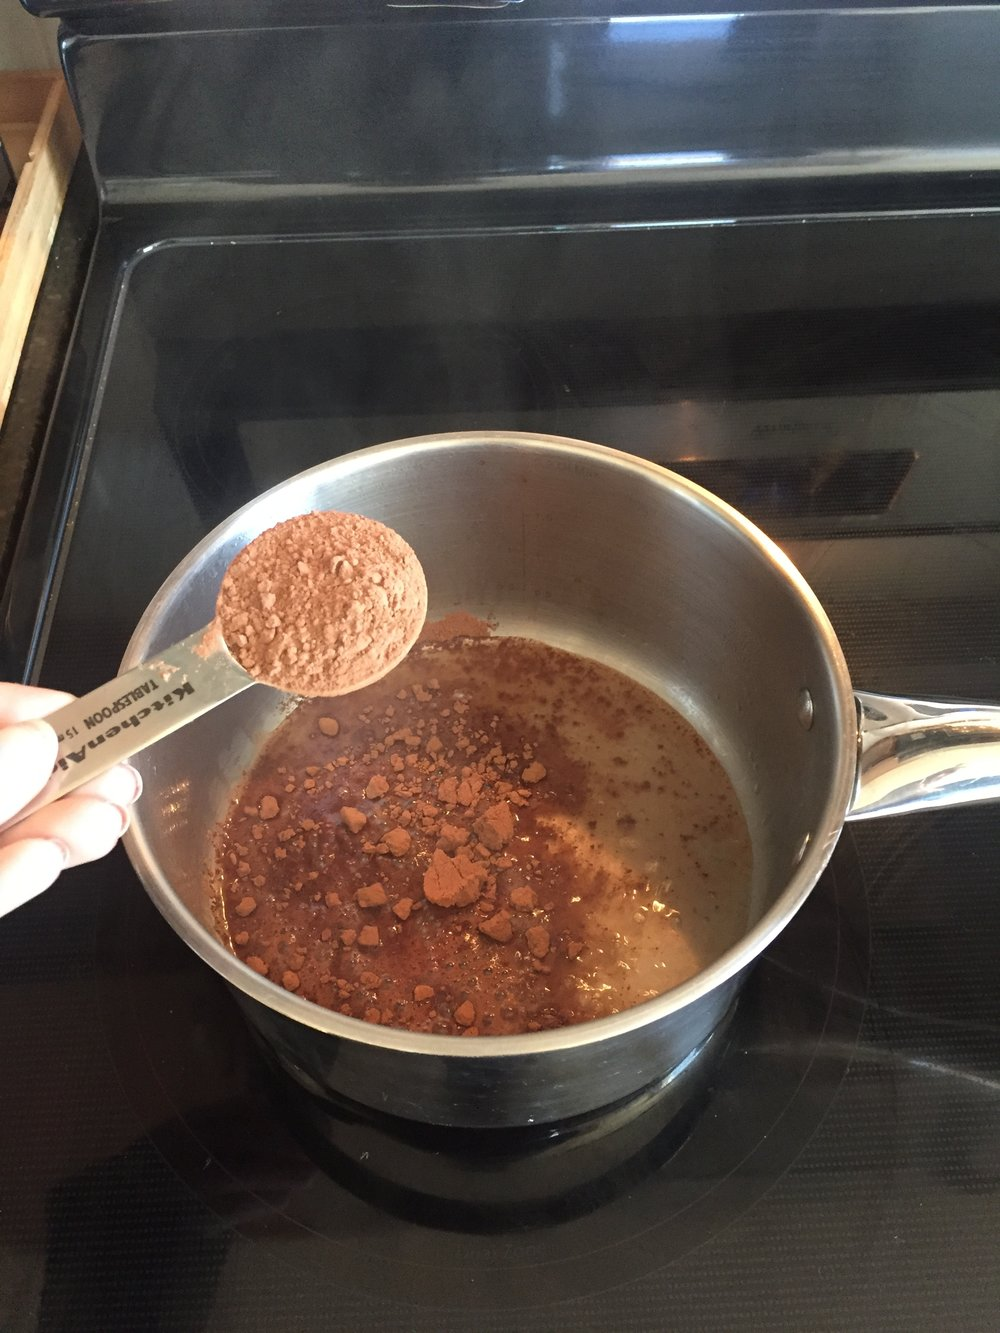 Step 1: whisk cocoa powder with boiling water